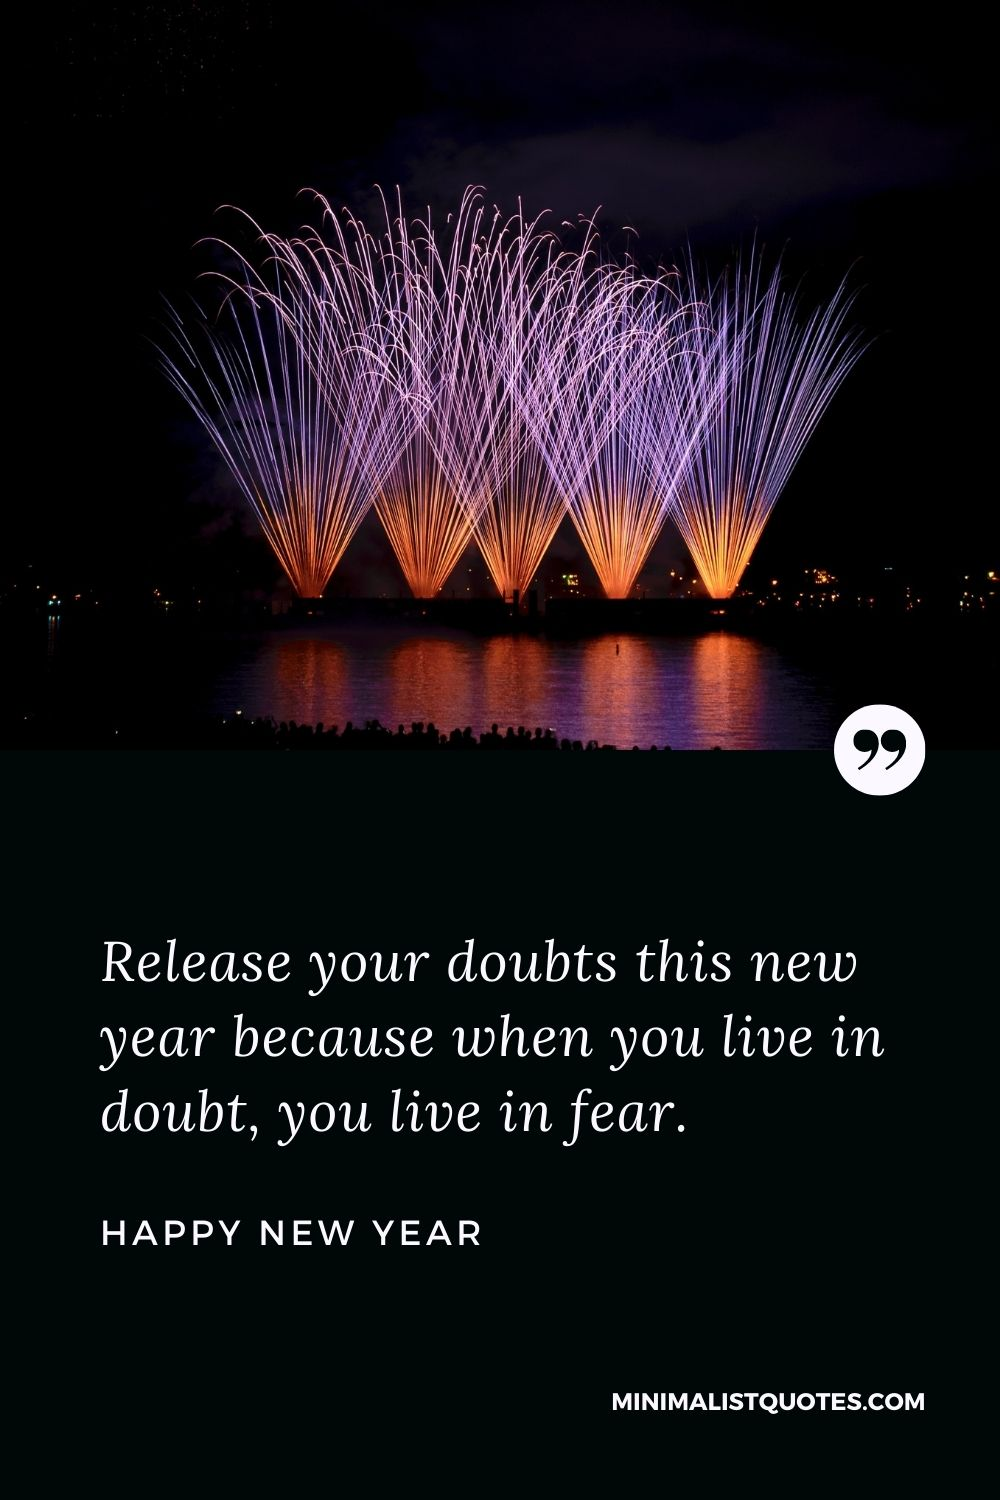 New Year Wish - Release your doubts this new year because when you live in doubt, you live in fear.